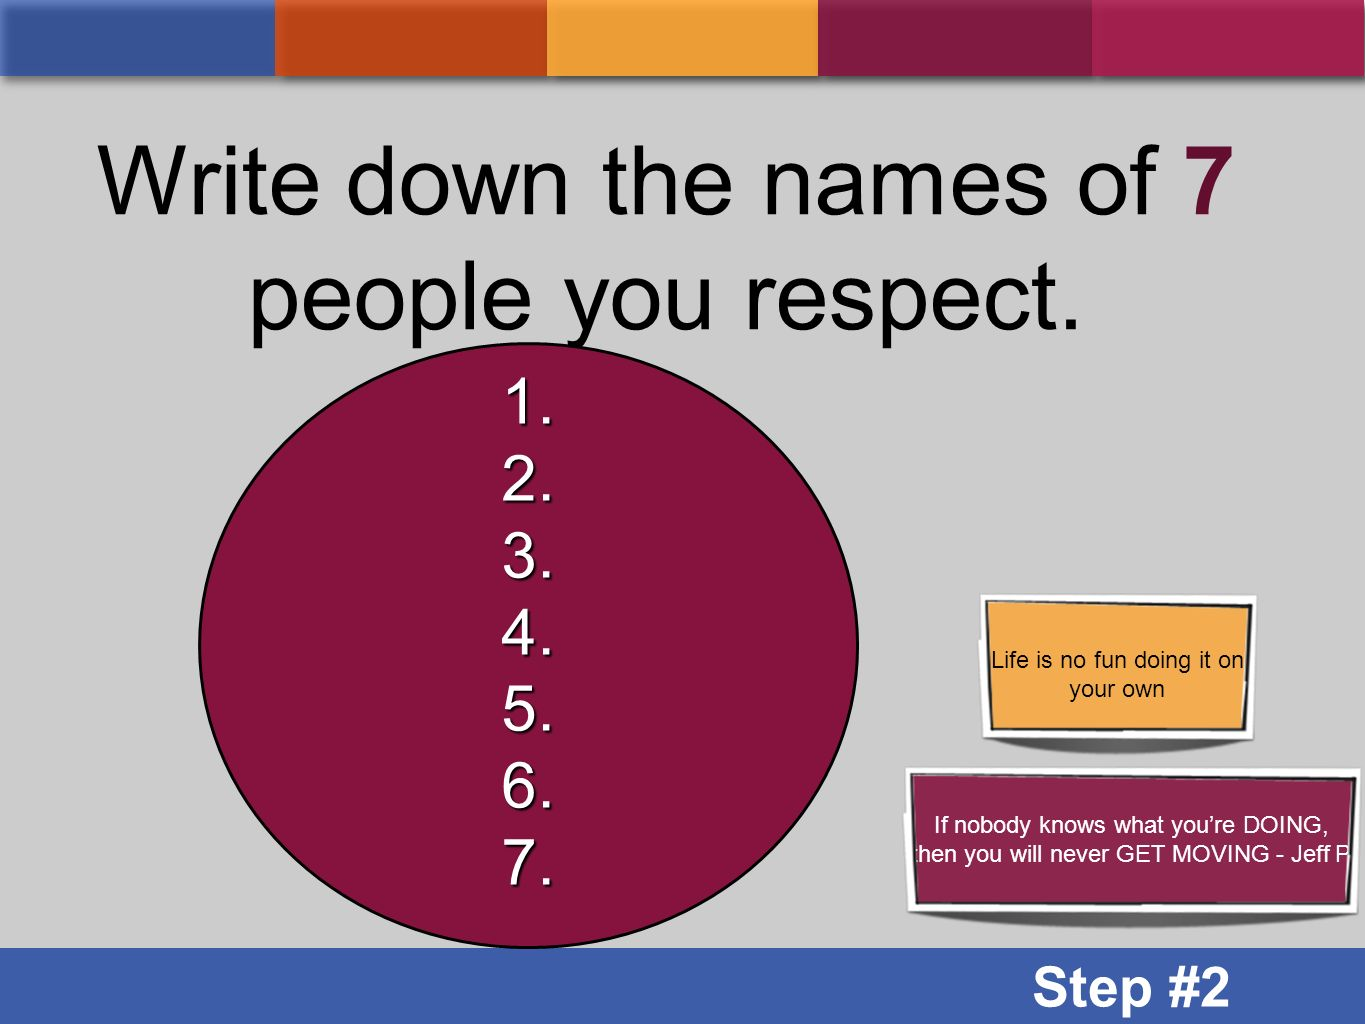 Write down the names of 7 people you respect.